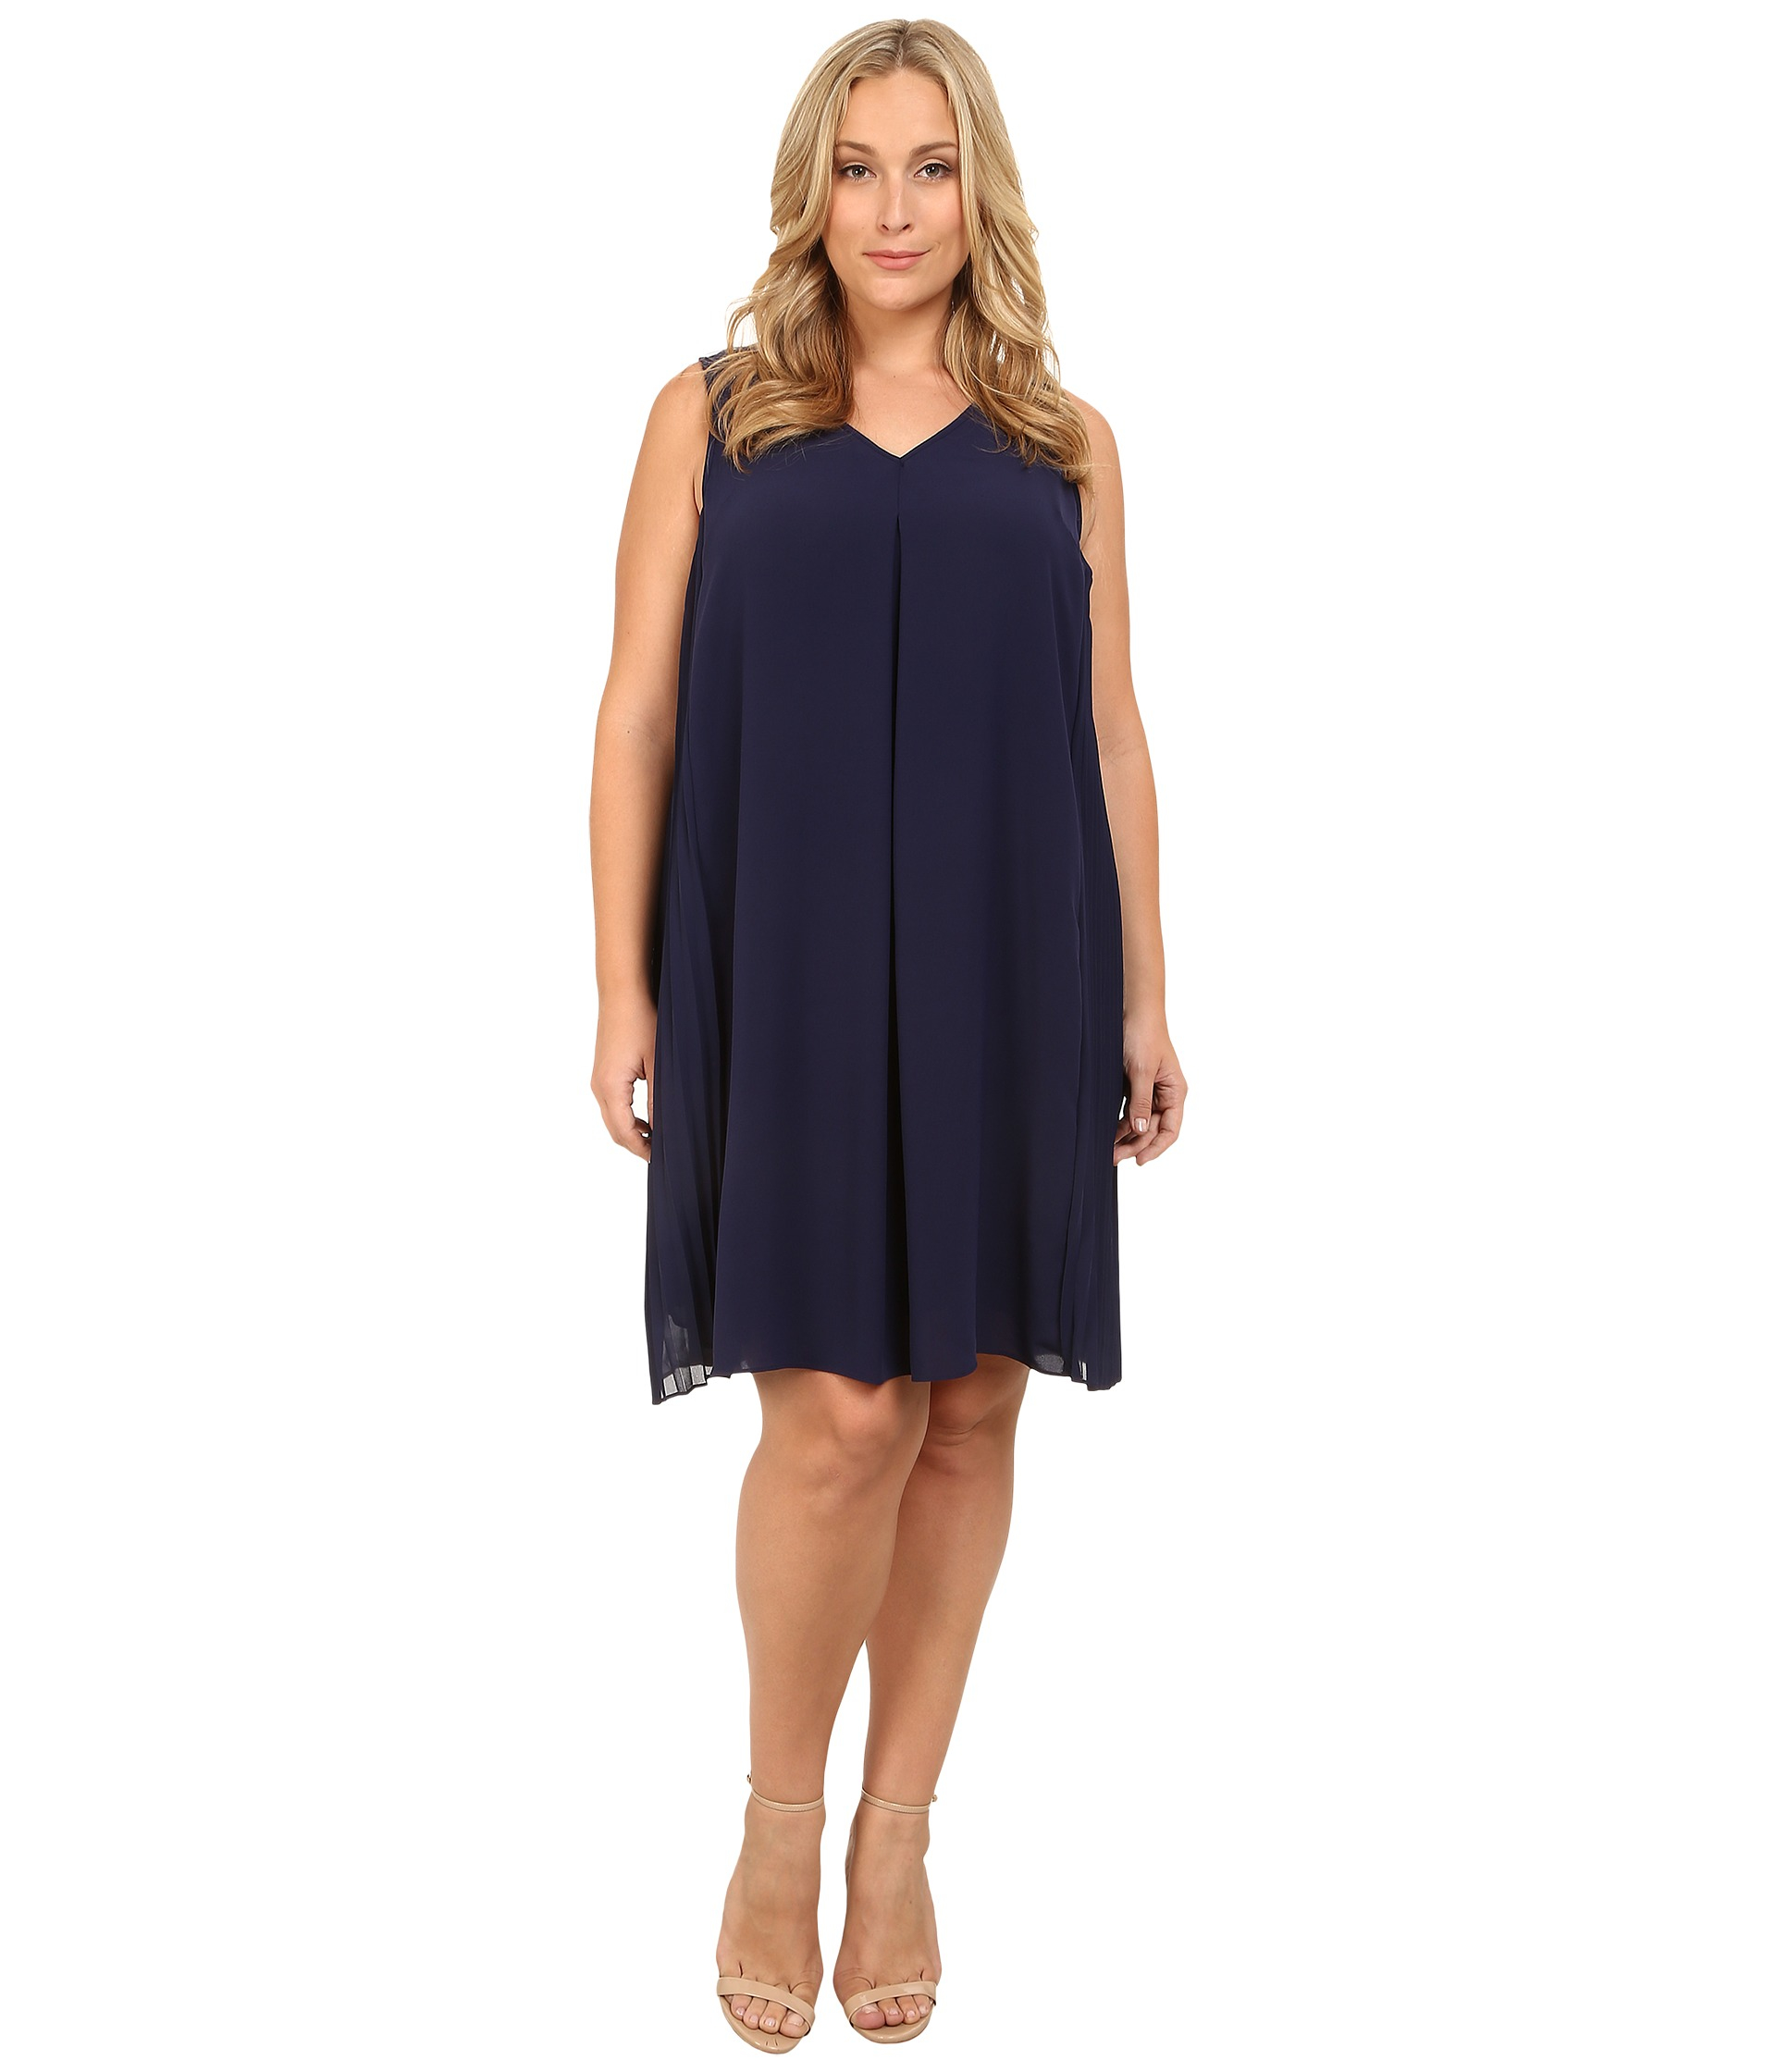 one forestall plus size clothes